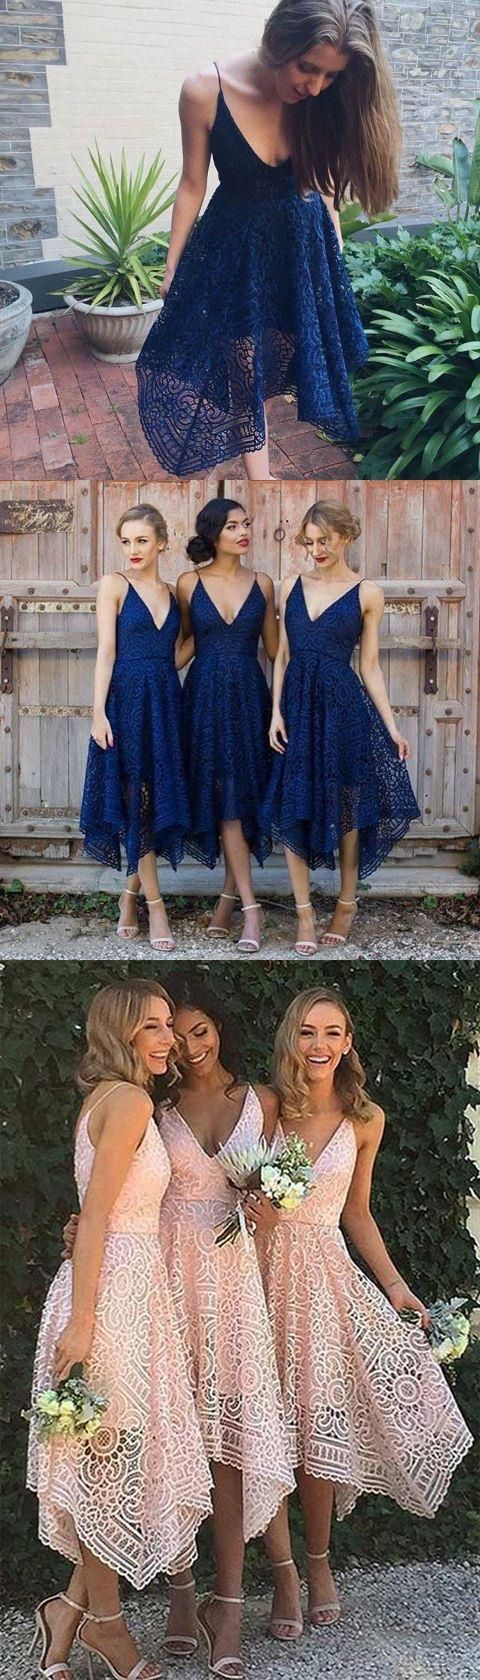 High Quality Lace V Neck Navy Blue Hi-Lo Straps Bridesmaid Dresses Prom Dress Party Gowns LD730 #bridesmaiddress #tealength #navybridesmaiddress #lace